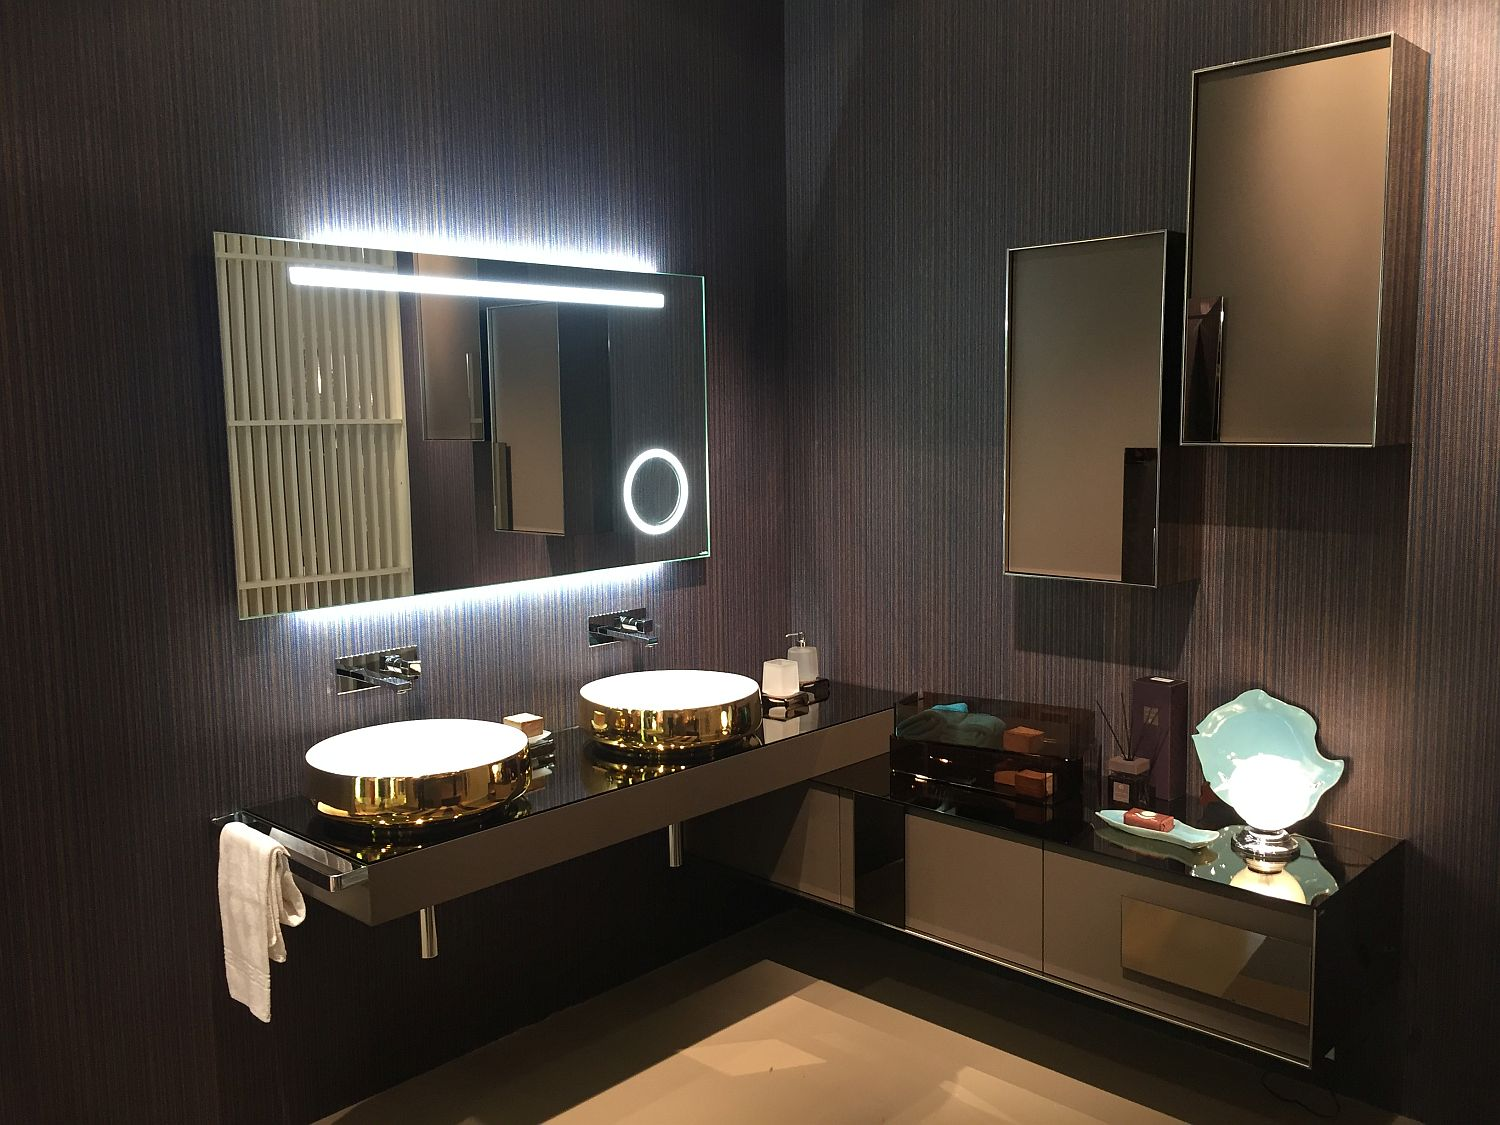 exquisite contemporary bathroom vanities with spacesavvy style - view in gallery glamarous bathroom vanity with mirrored finish and a hintof gold exquisite contemporary bathroom vanities with